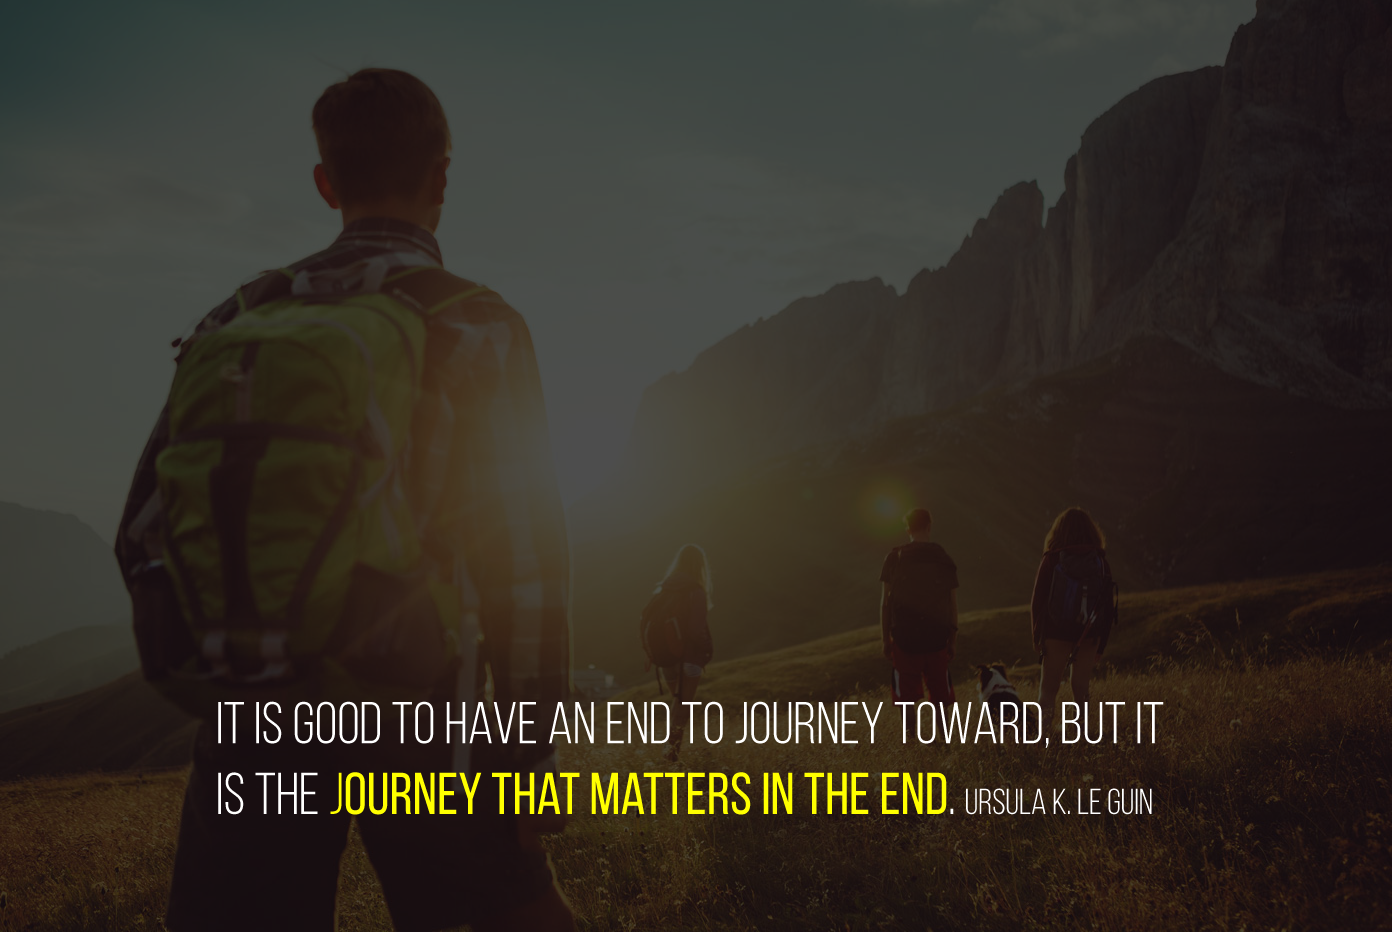 It is good to have an end to journey toward, but it is the journey that matters in the end. Ursula K. Le Guin